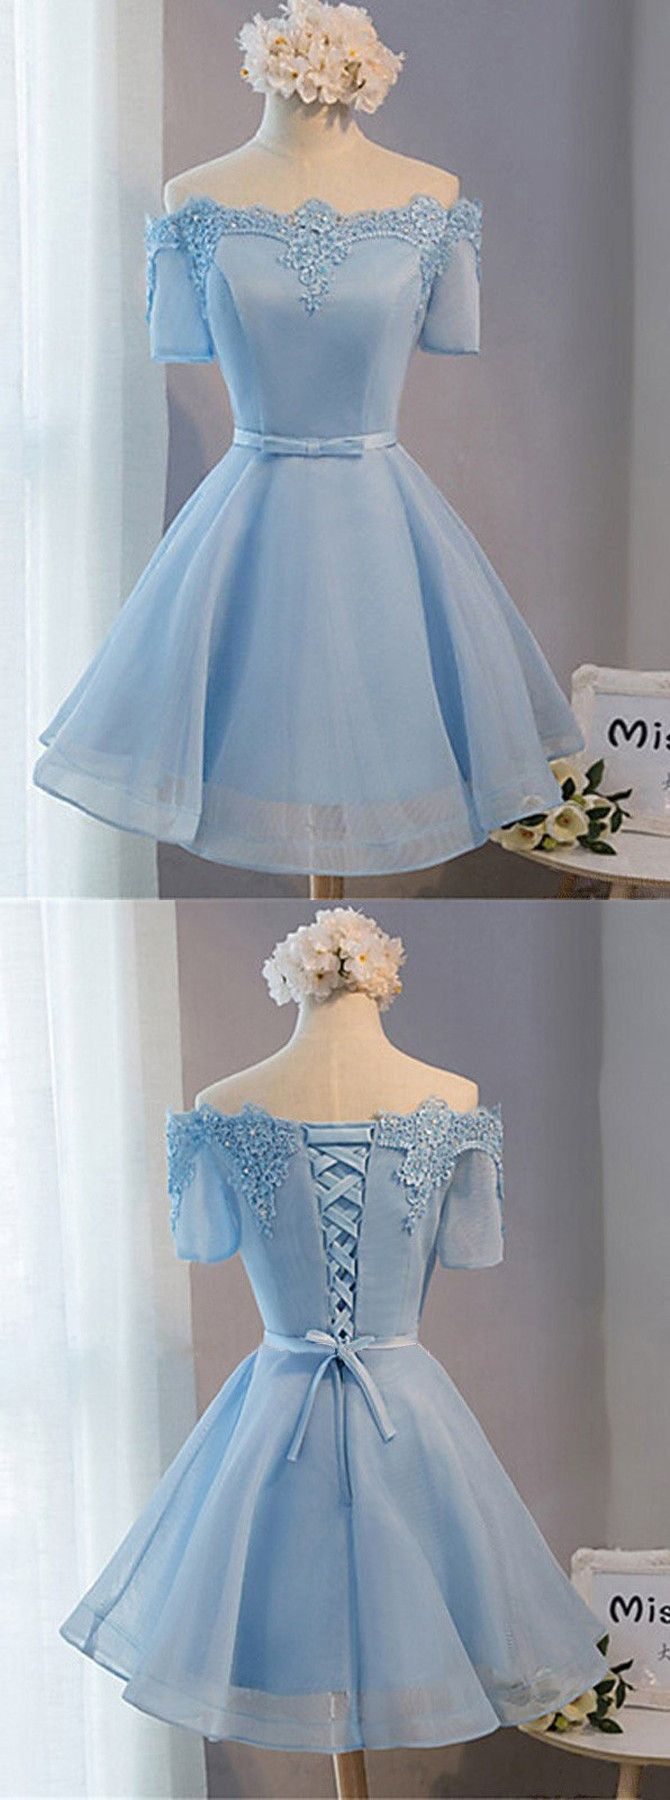 best clothes images on pinterest classy dress dream dress and